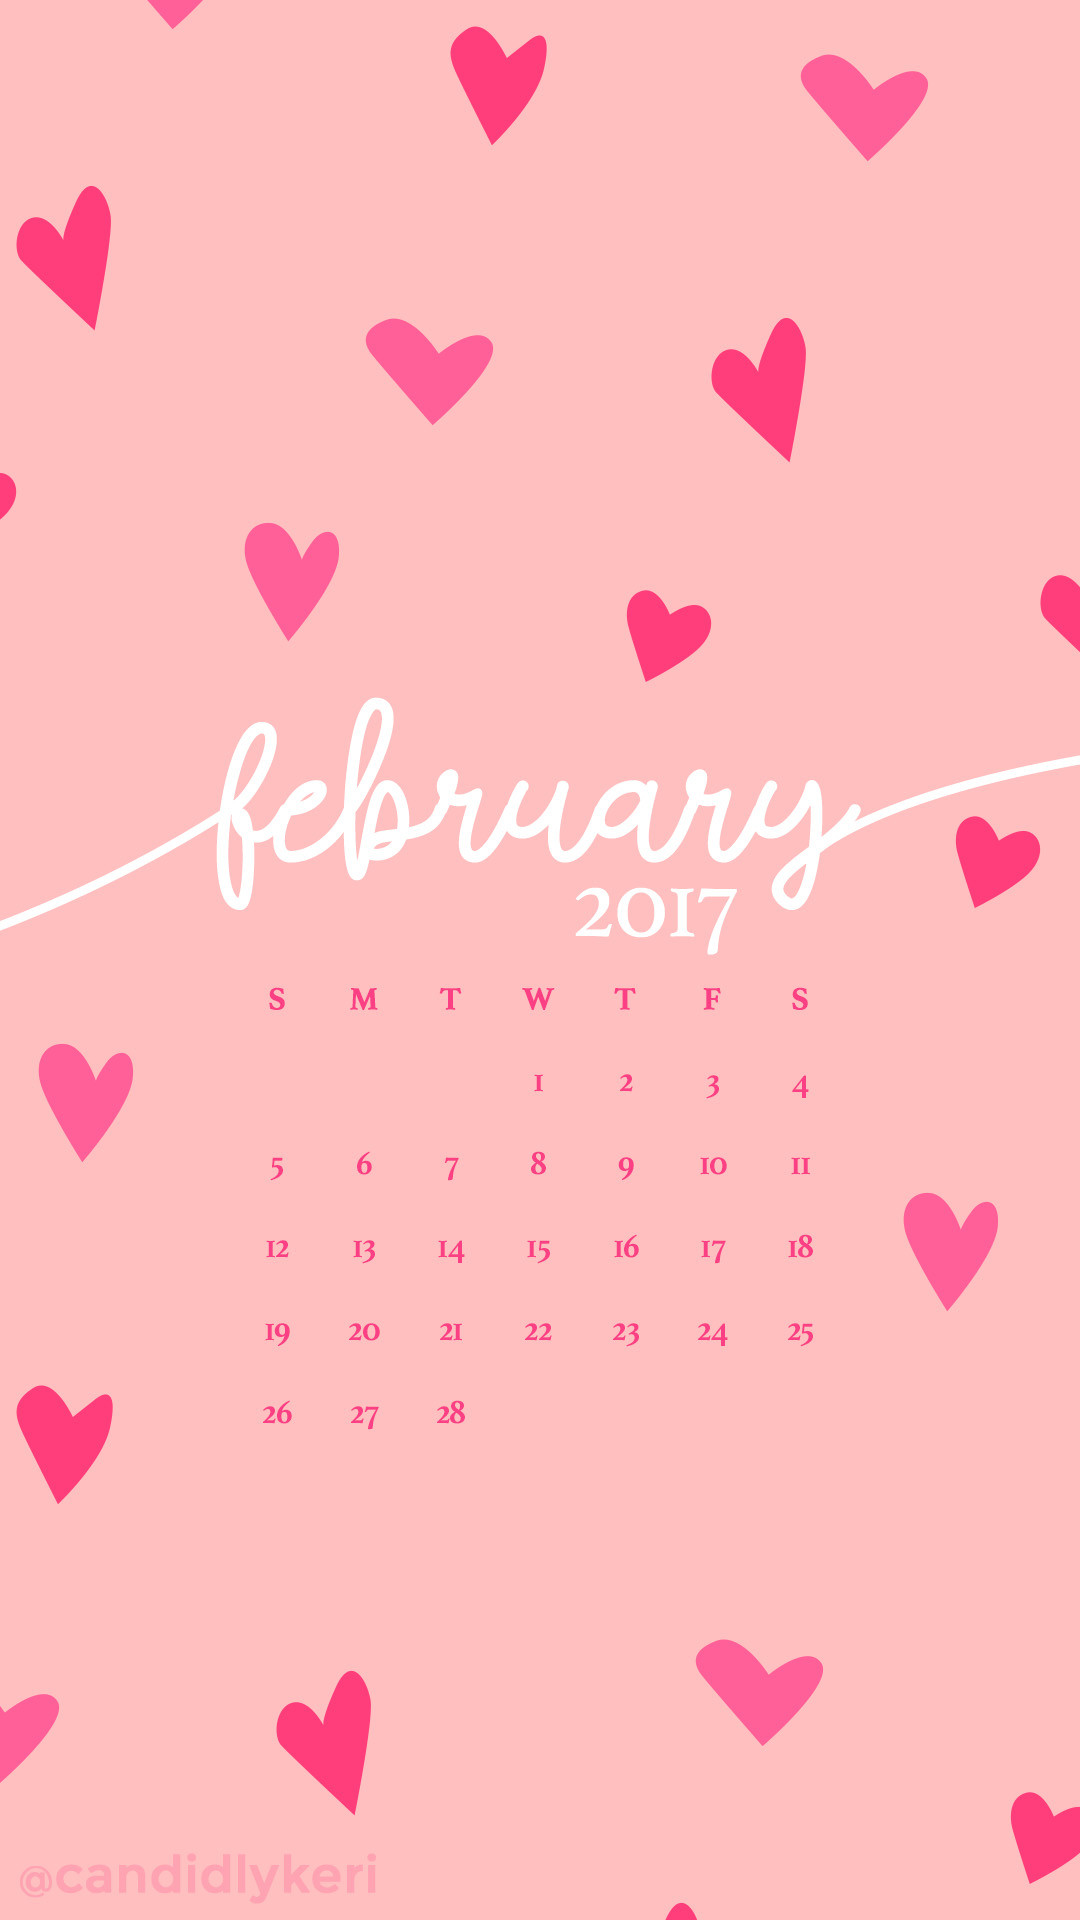 1080x1920 Pink hearts February calendar 2017 wallpaper you can download for free on  the blog! For